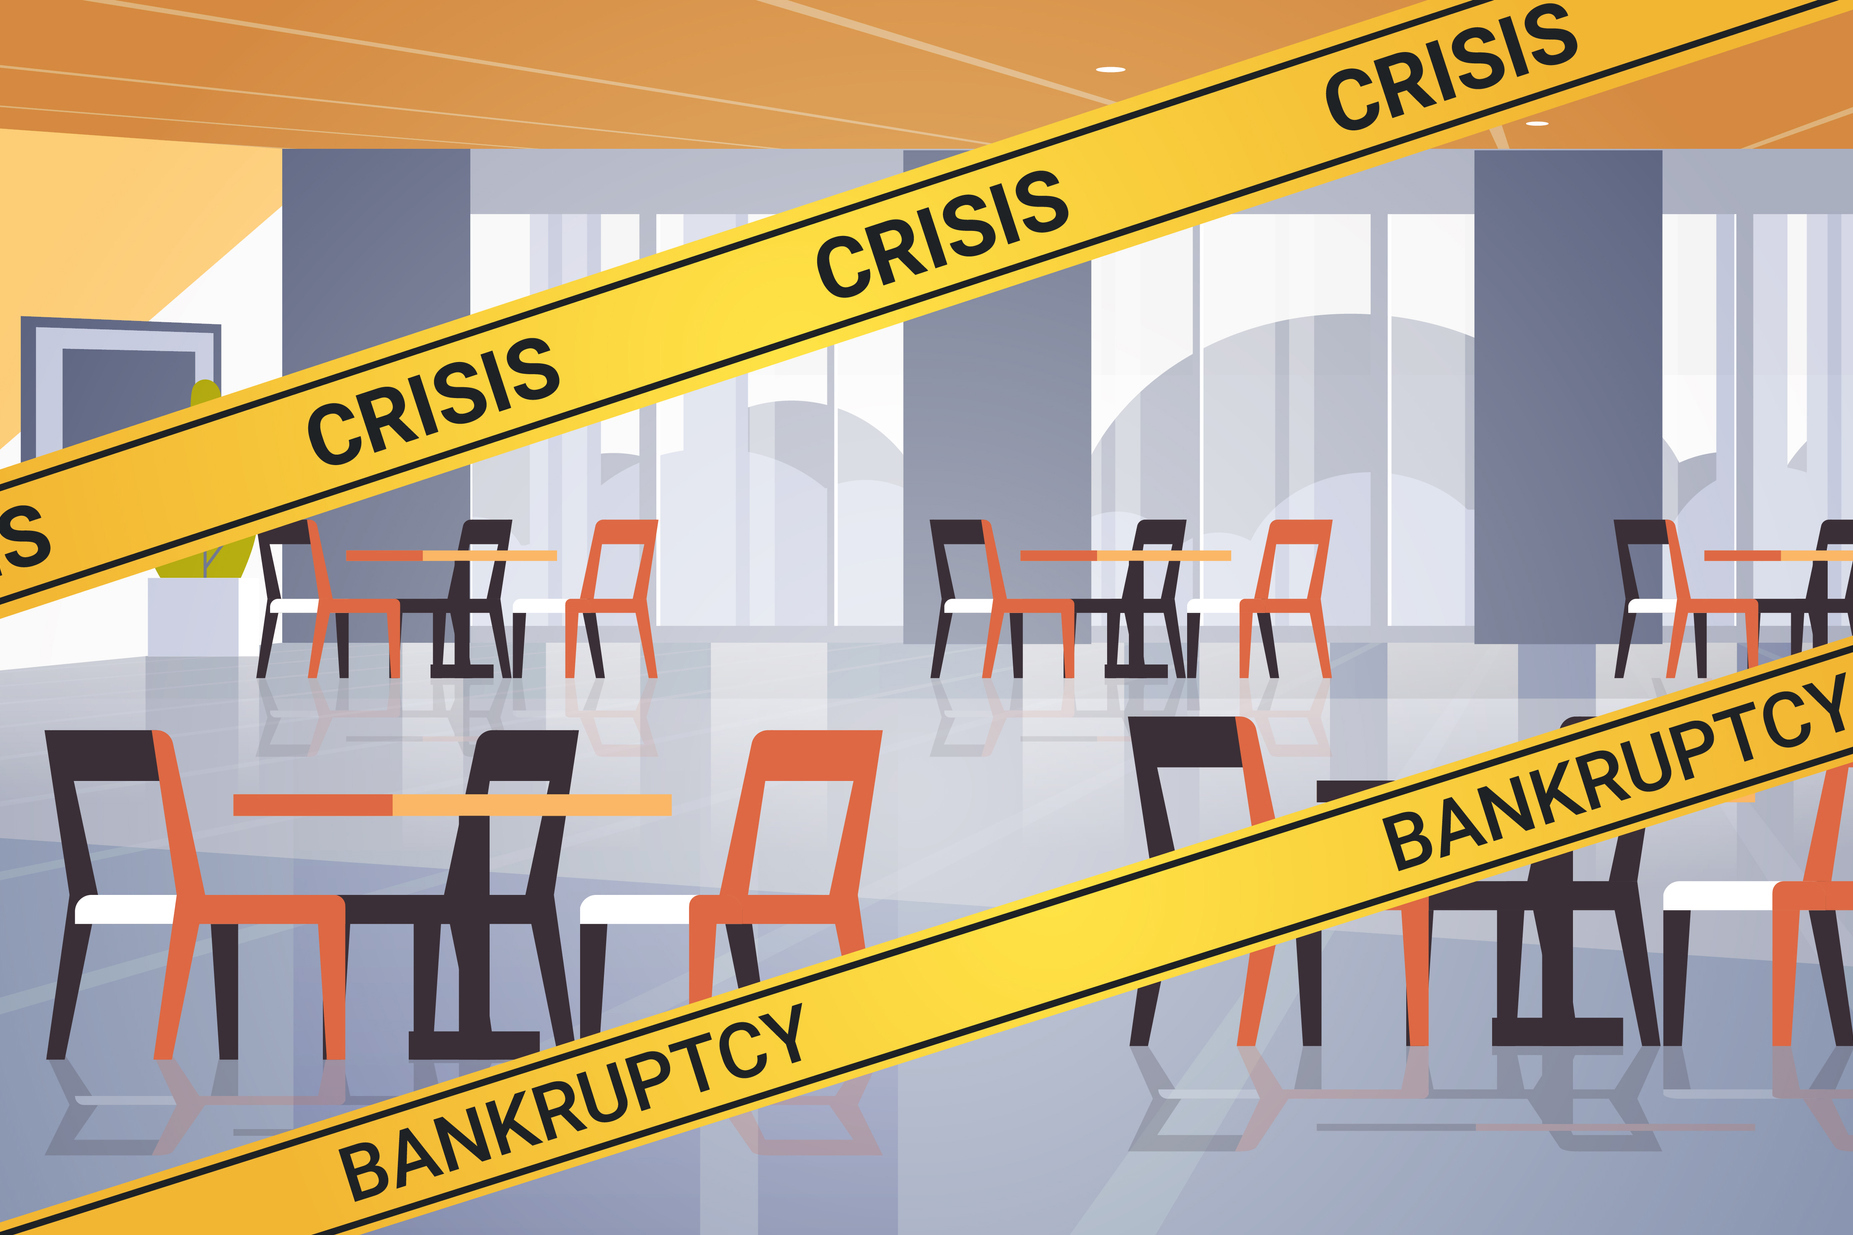 The Bankruptcy Board Generation